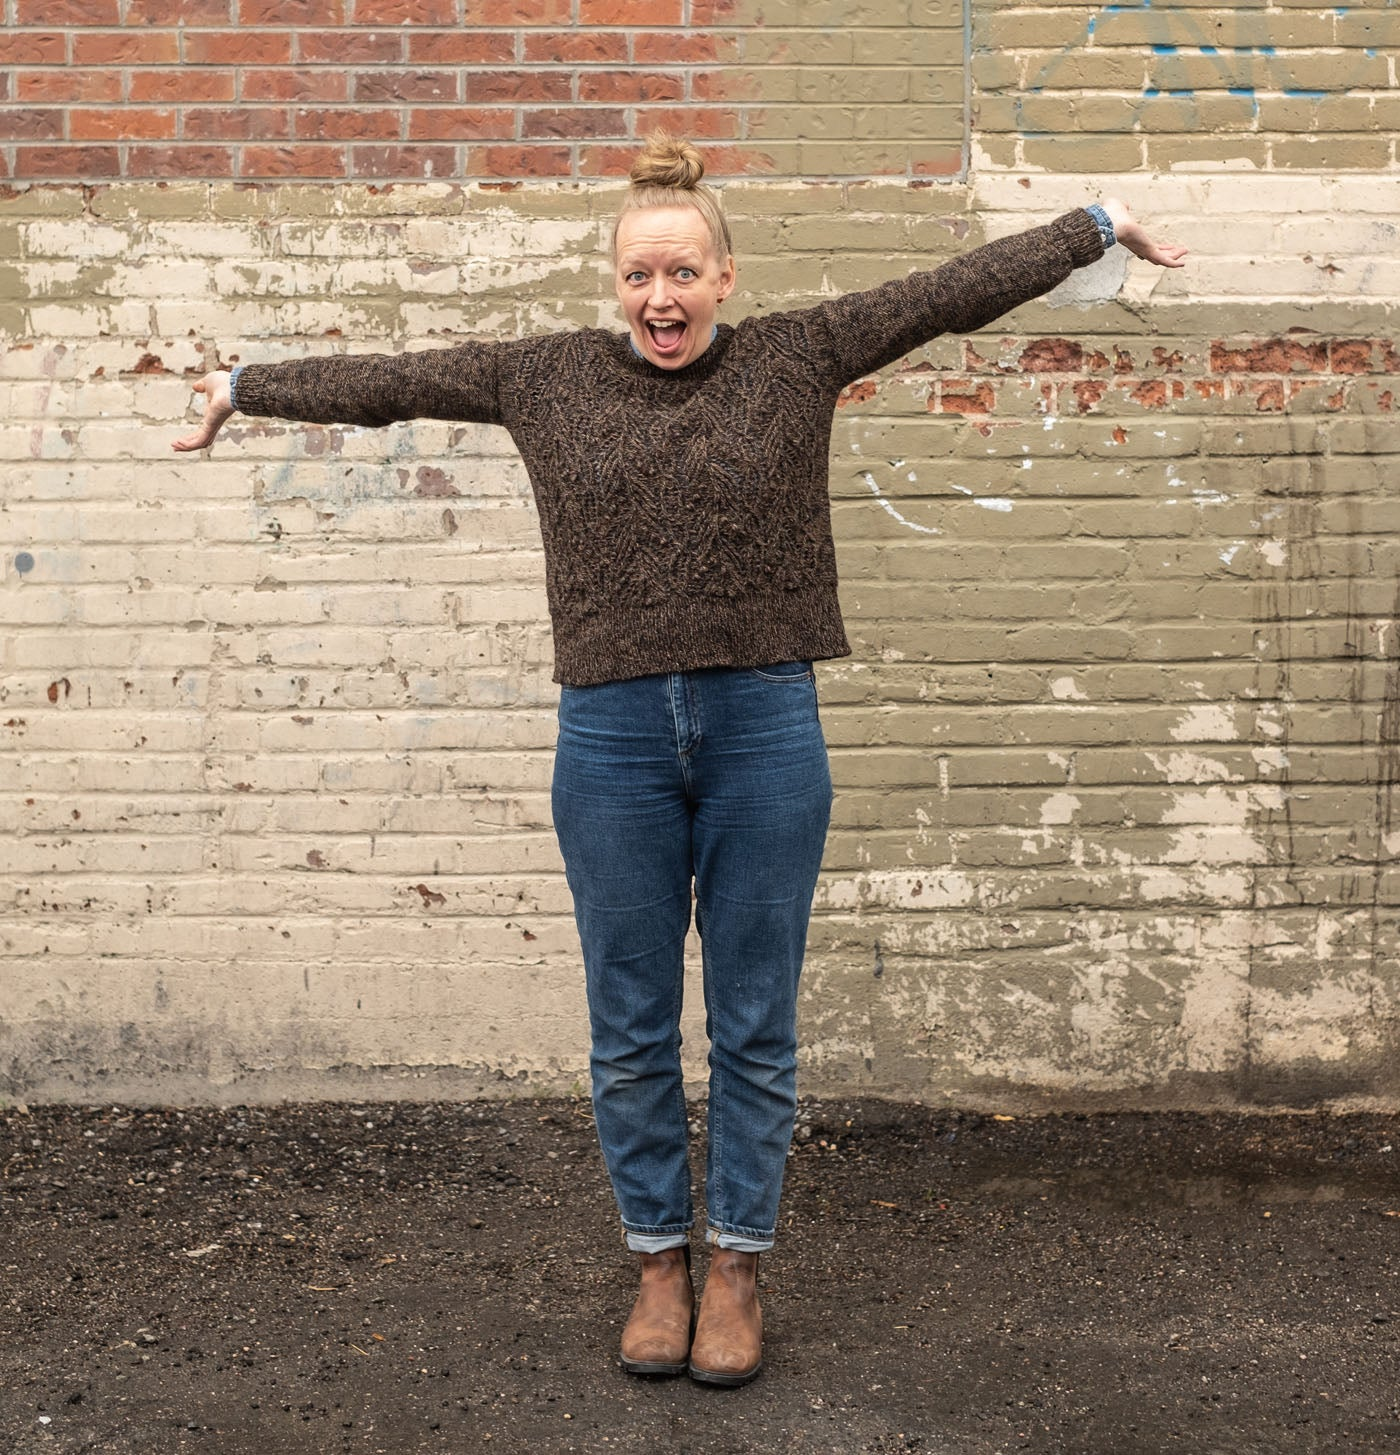 Amber has her arms flung wide with a giant goofy grin on her face.  She wears jeans, and brown leather boots along with her brown hand knit Atlantic pullover. Her blonde hair is in a top knot. Behind her is a brick wall painted in a patchwork of taupe hues.